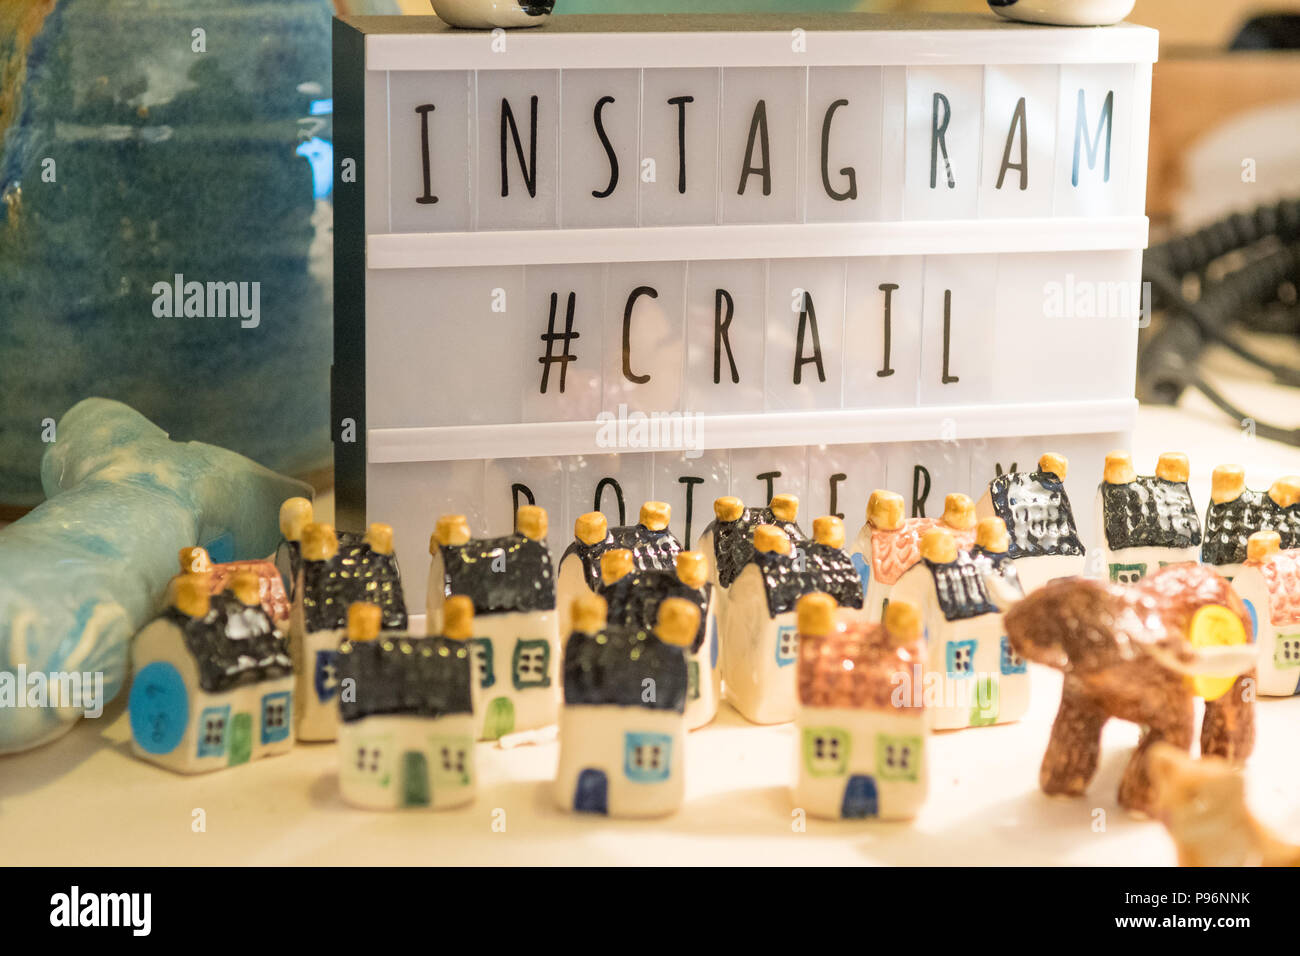 social media marketing using branded hashtag to encourage user-generated content by a small business -  Crail Pottery, Fife, Scotland, UK - Stock Image